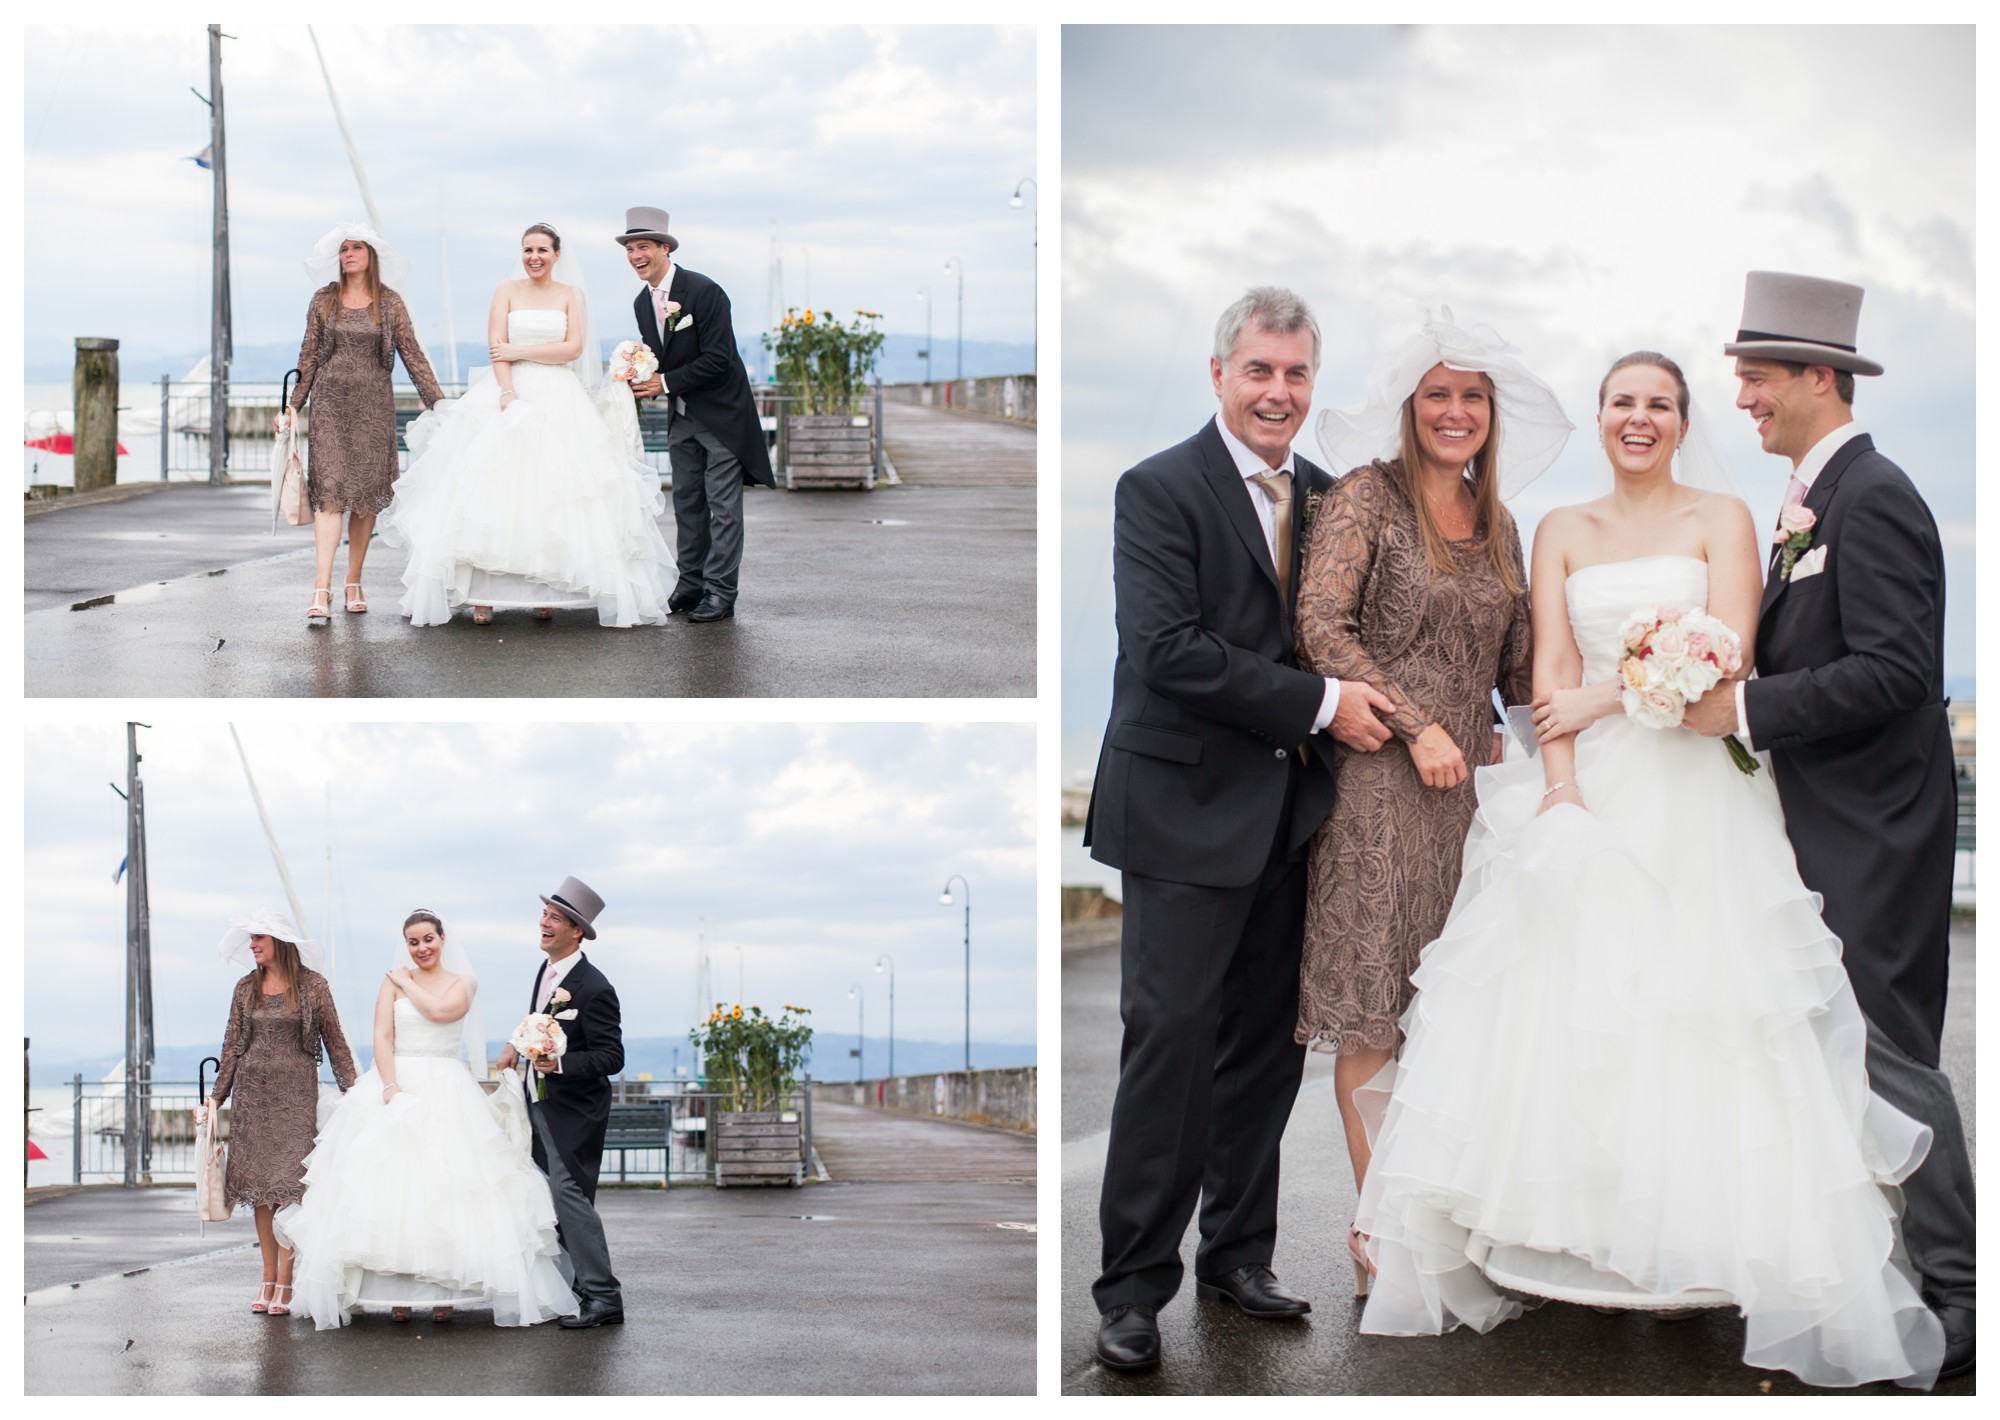 Fotograf Konstanz - 2013 12 02 0028 - Wedding Story from Raphaela and Phillip at Lake of Constance  - 133 -